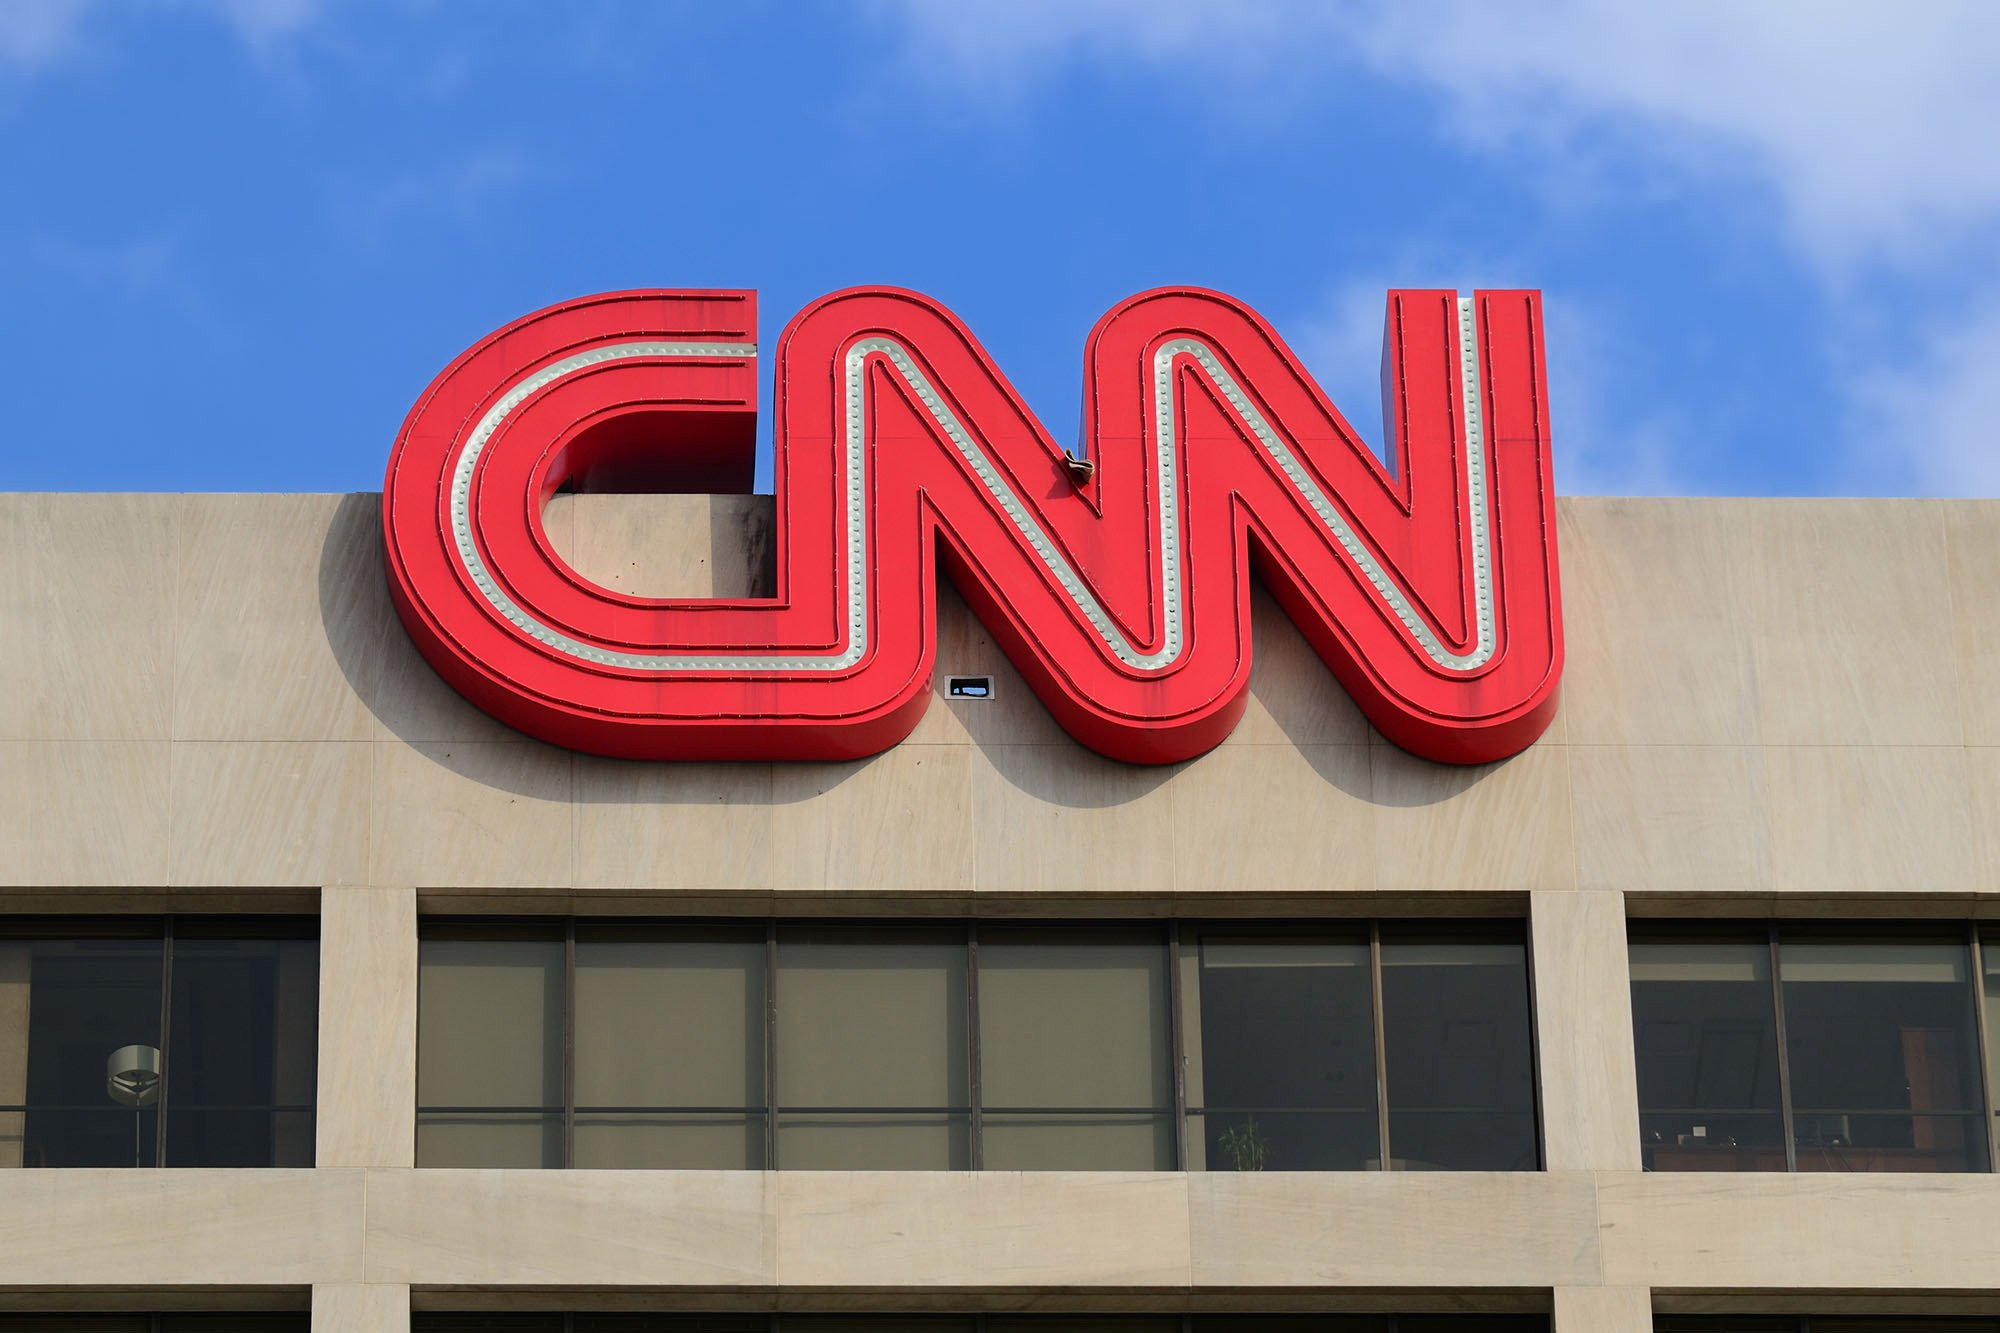 Maniac threatens mass shooting at 'fake news' CNN headquarters